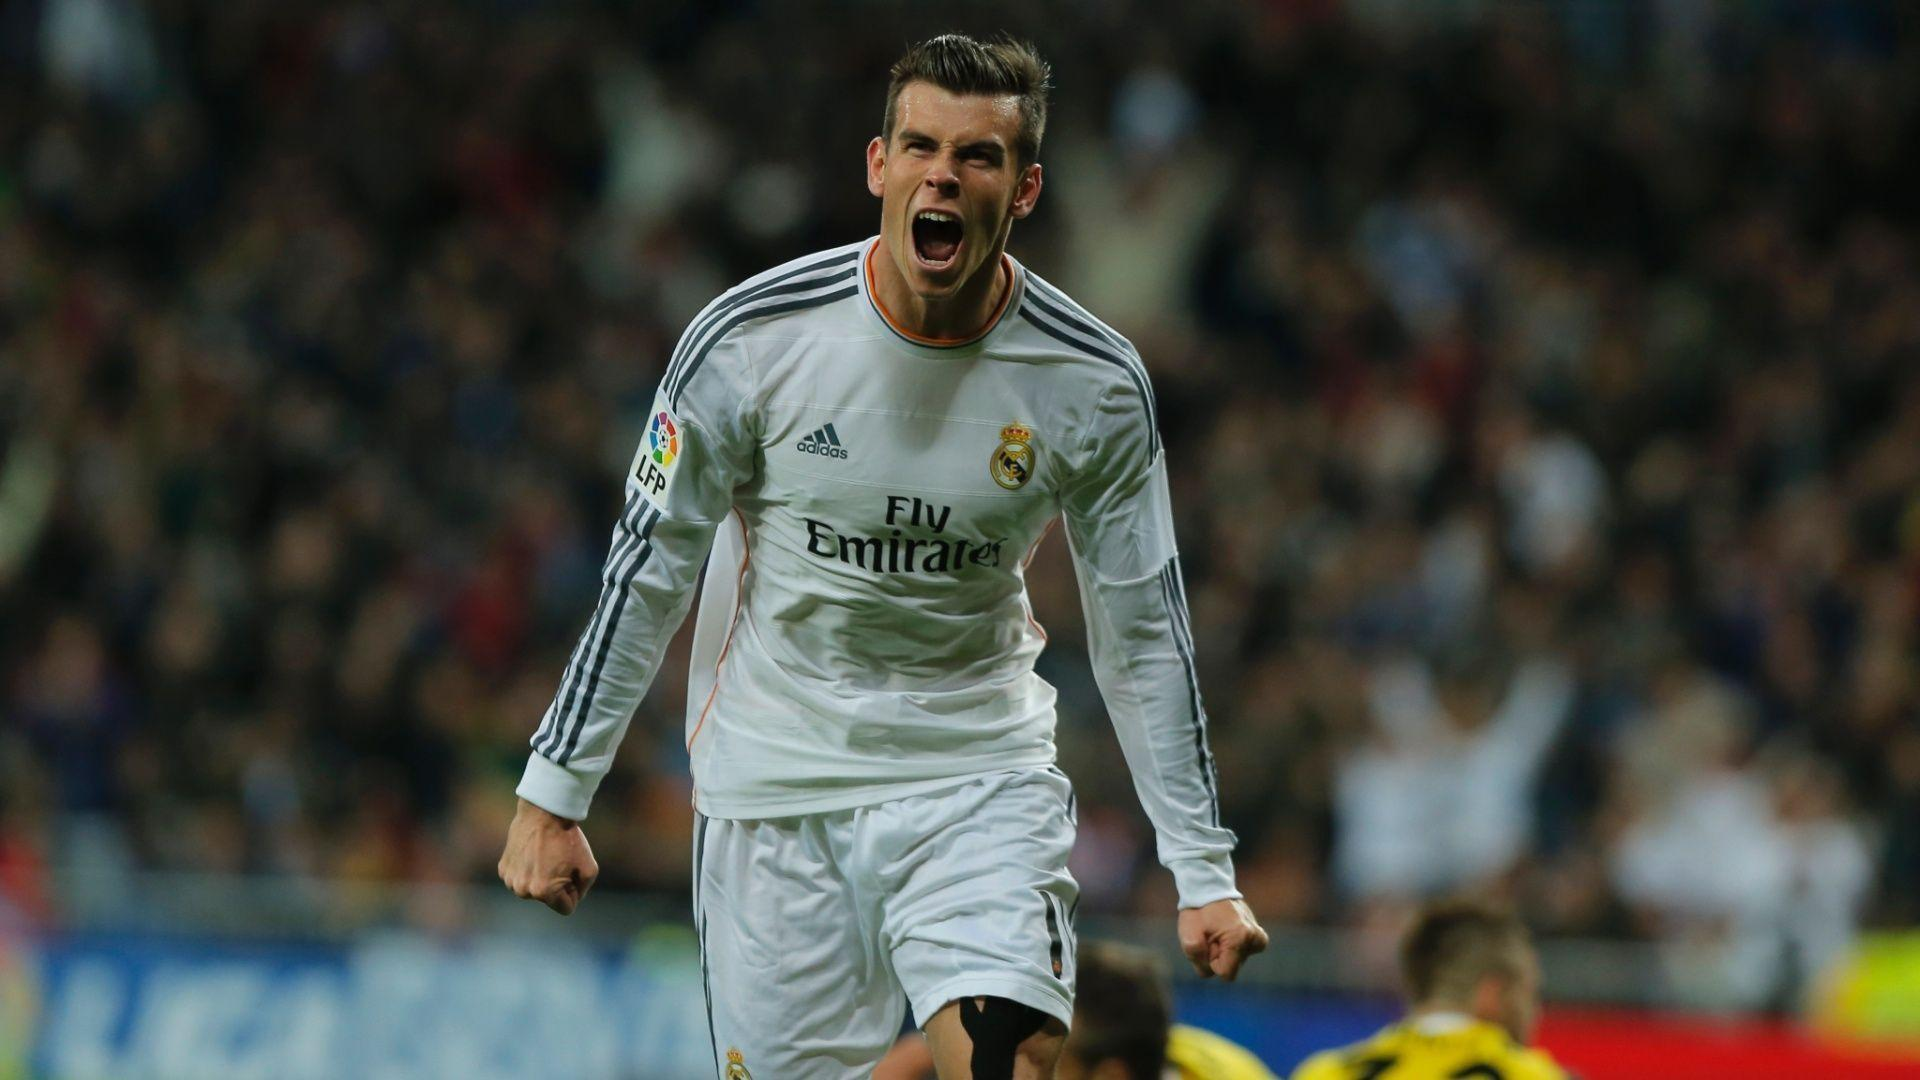 Gareth Bale Real Madrid Best Wallpapers 154433 Images ...